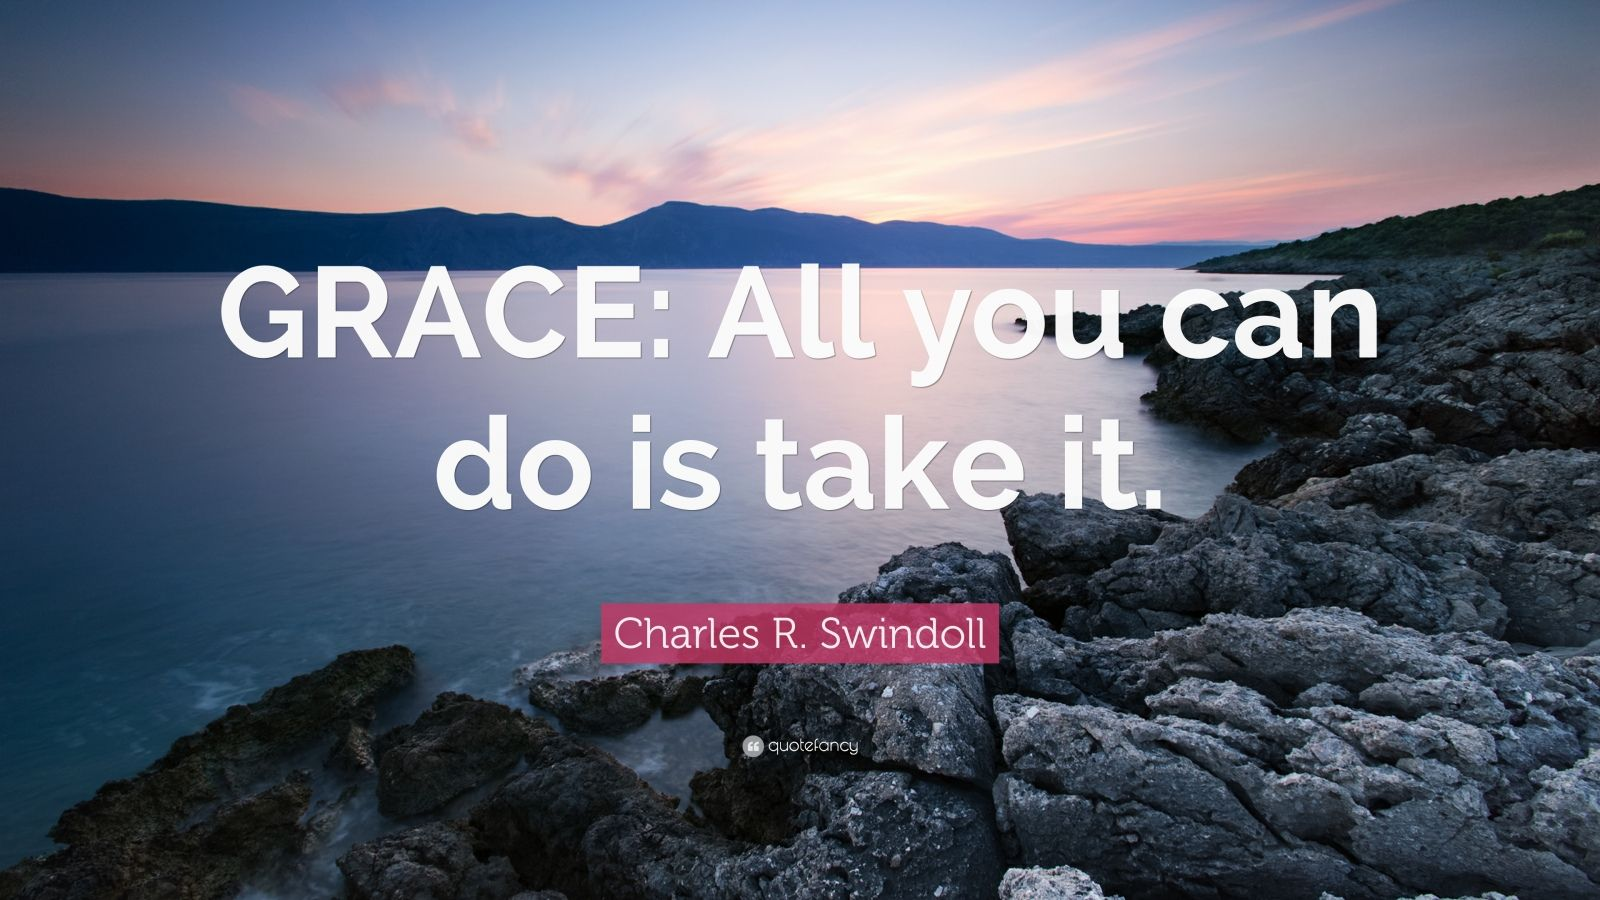 """Charles R. Swindoll Quote: """"GRACE: All you can do is take it."""""""